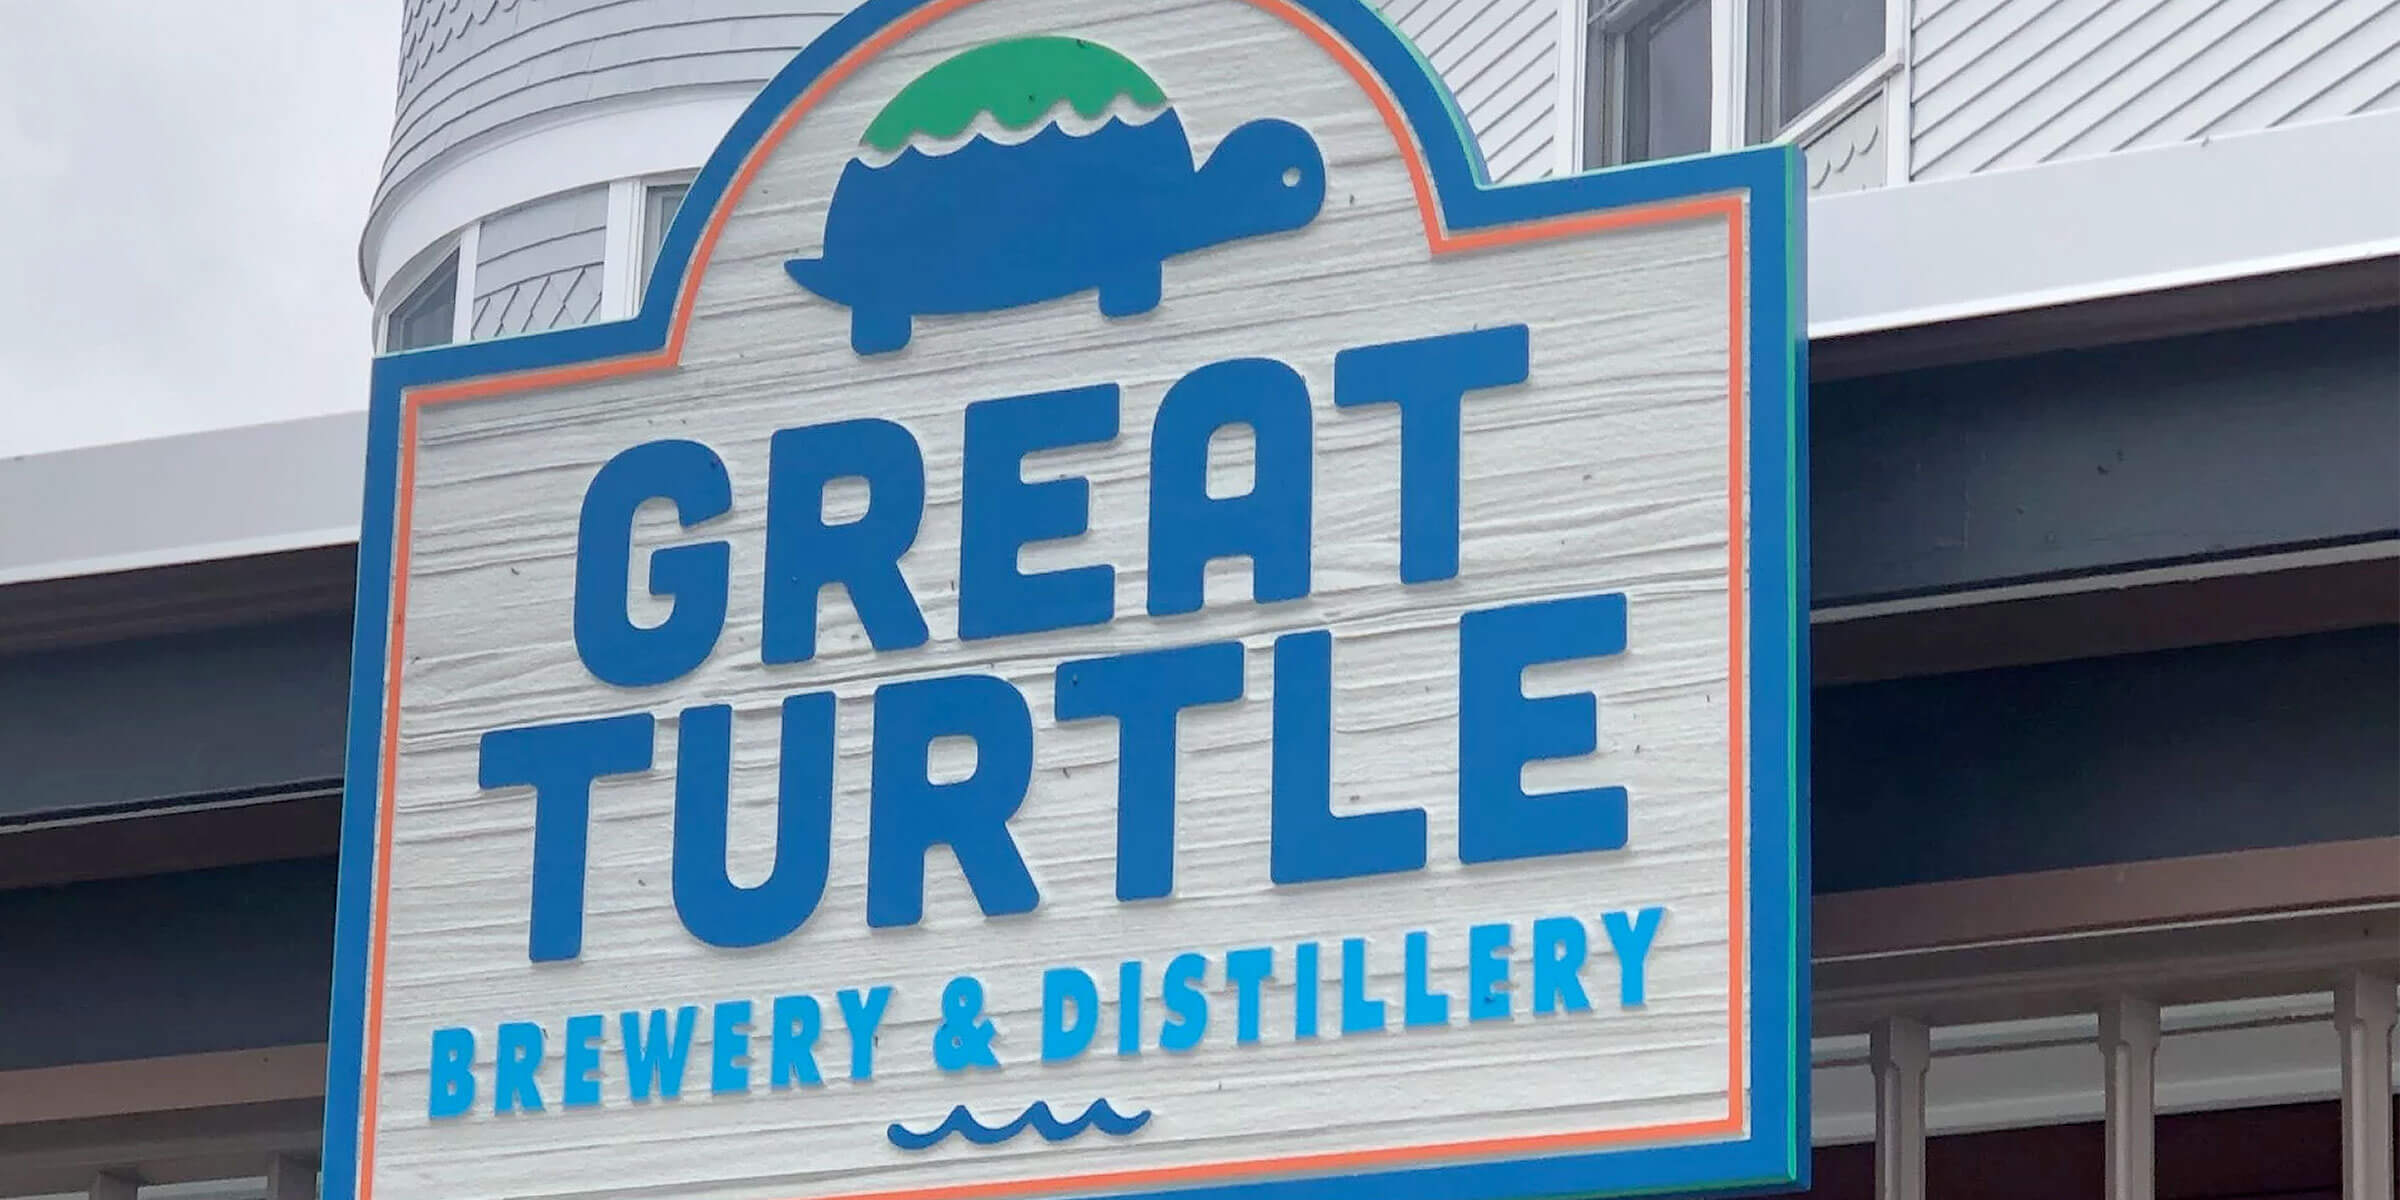 Signage posted above the entrance to the Great Turtle Brewery & Distillery on Mackinac Island, Michigan